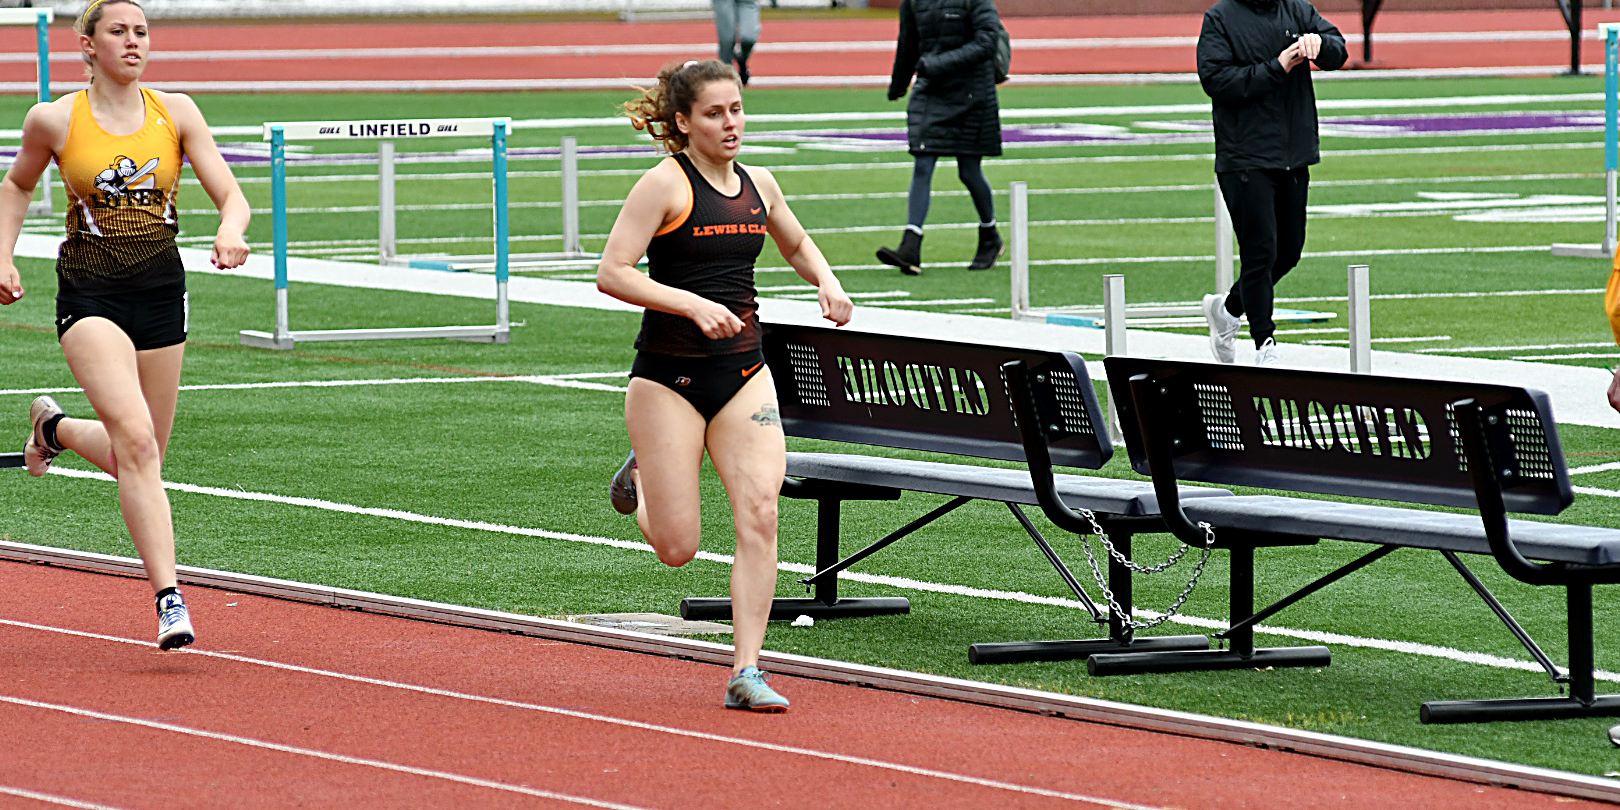 Taylor's win in 800 meters lifts her to fifth place in the heptathlon